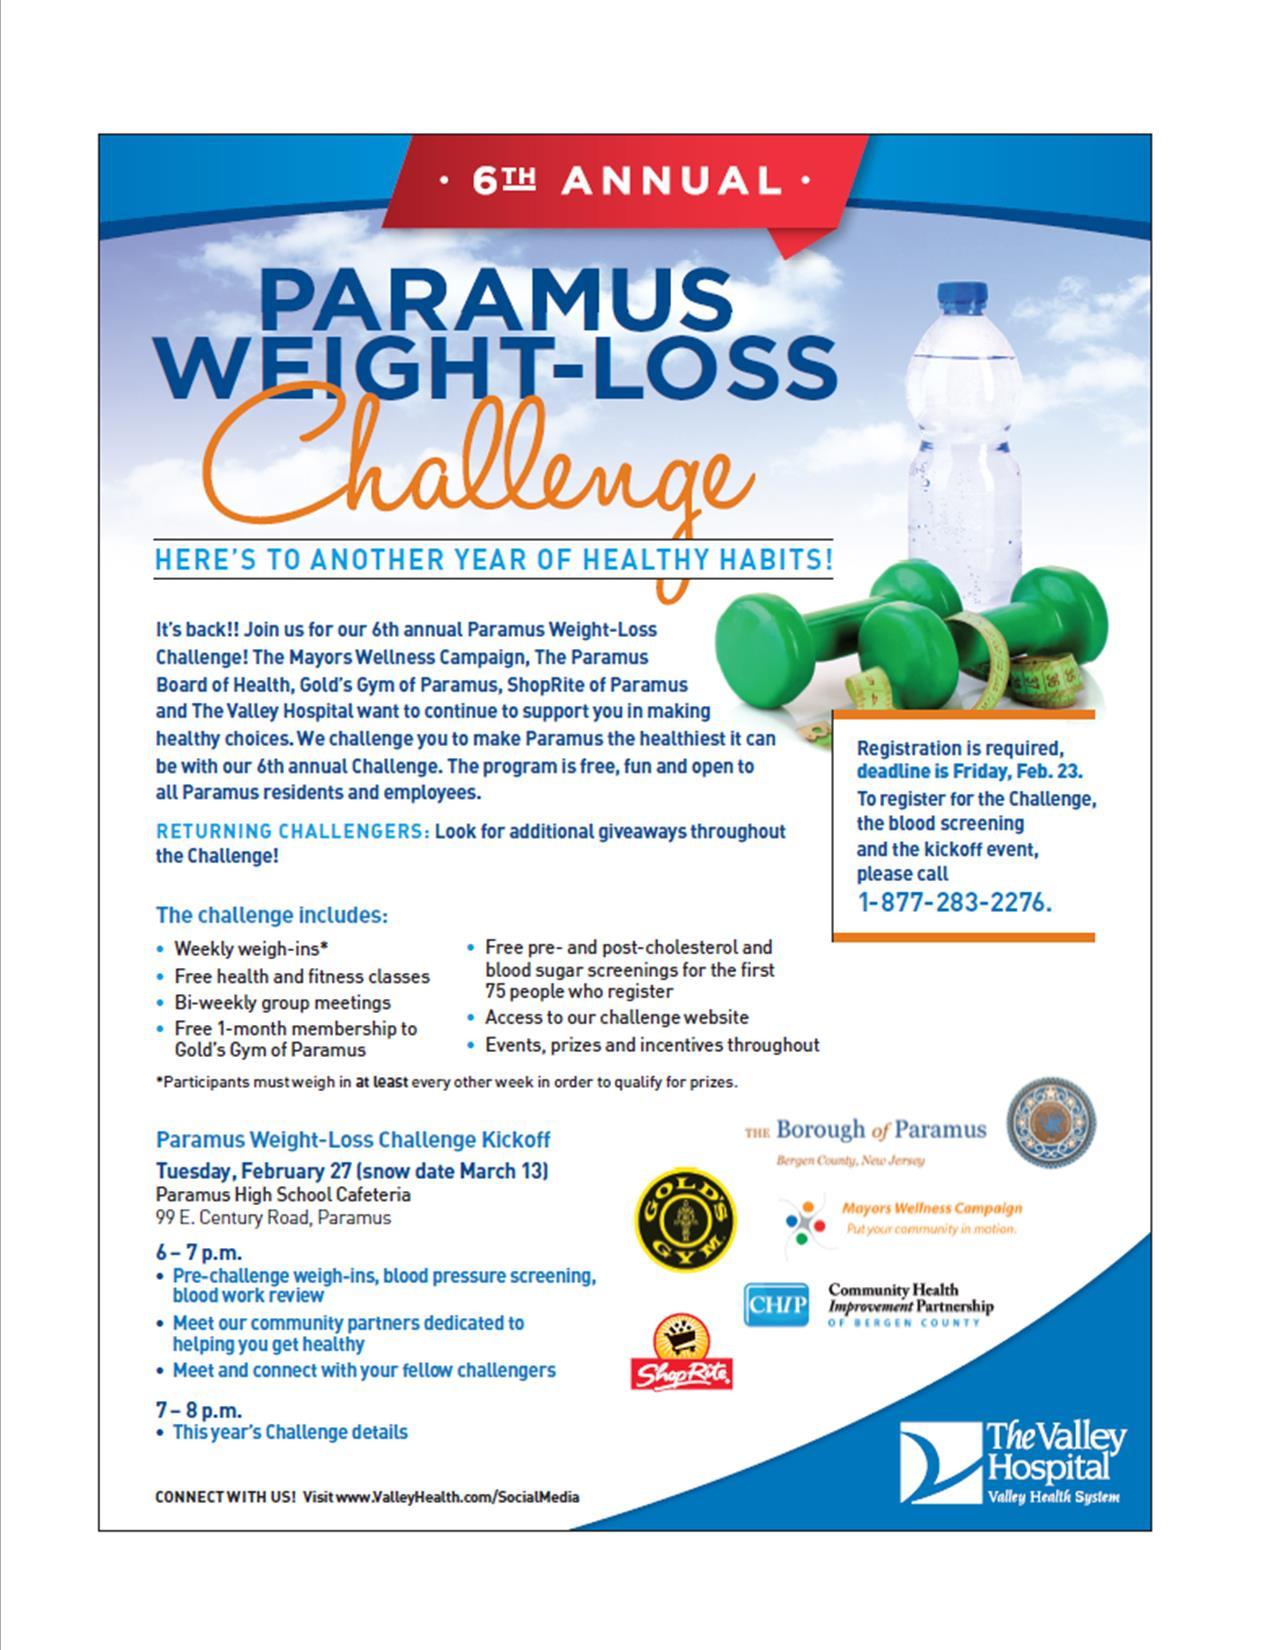 Paramus Weight Loss Challenge Flyer